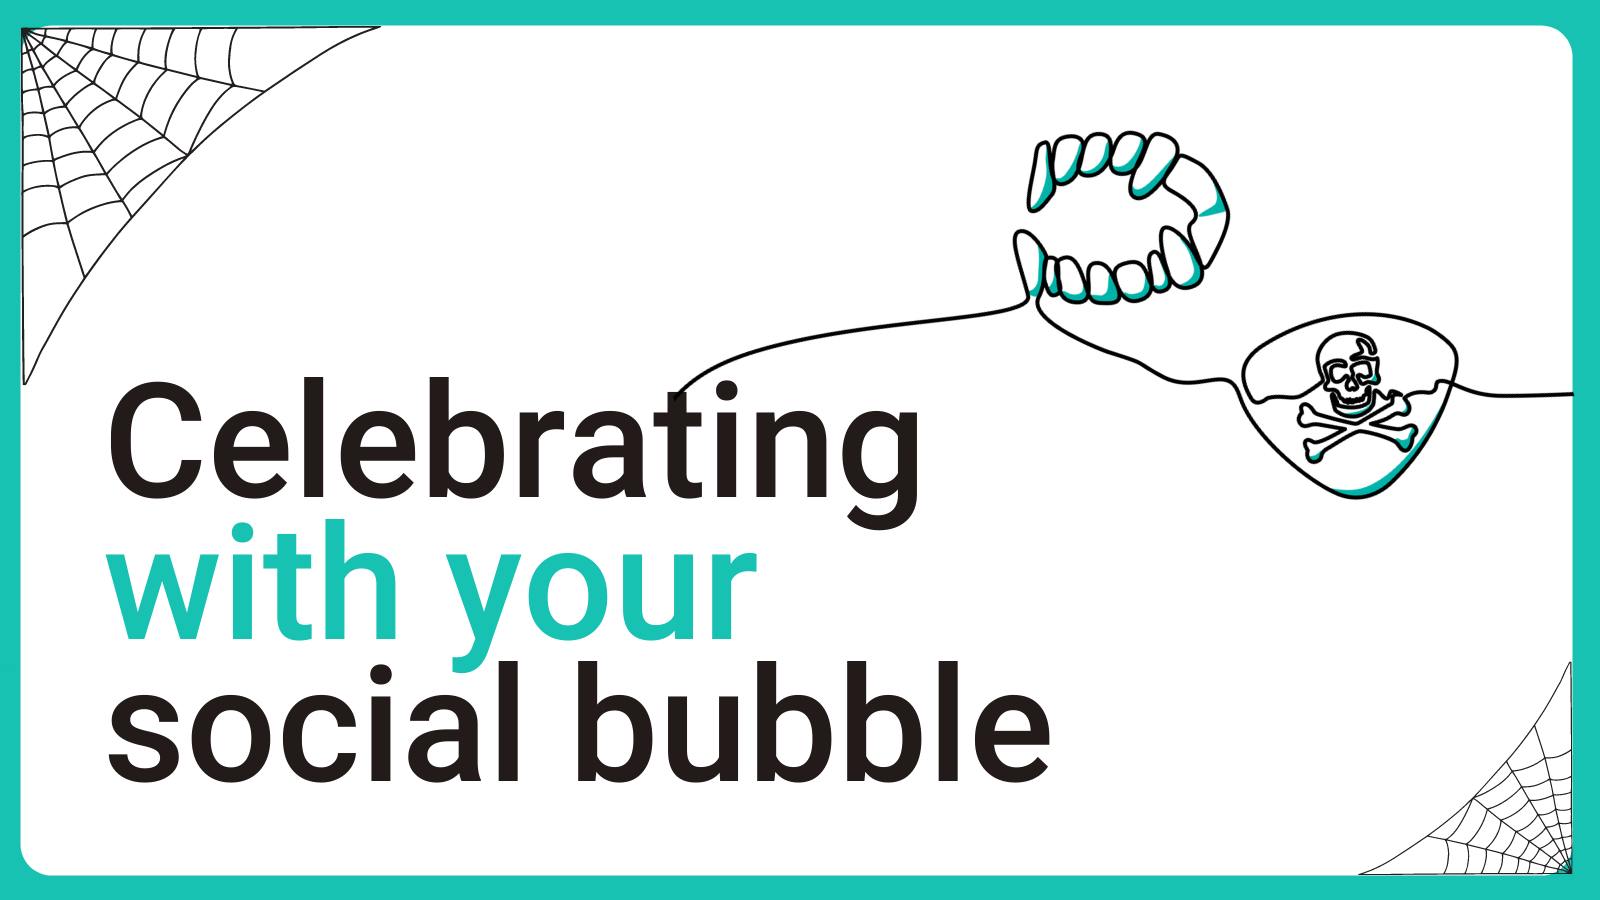 Celebrating with your social bubble